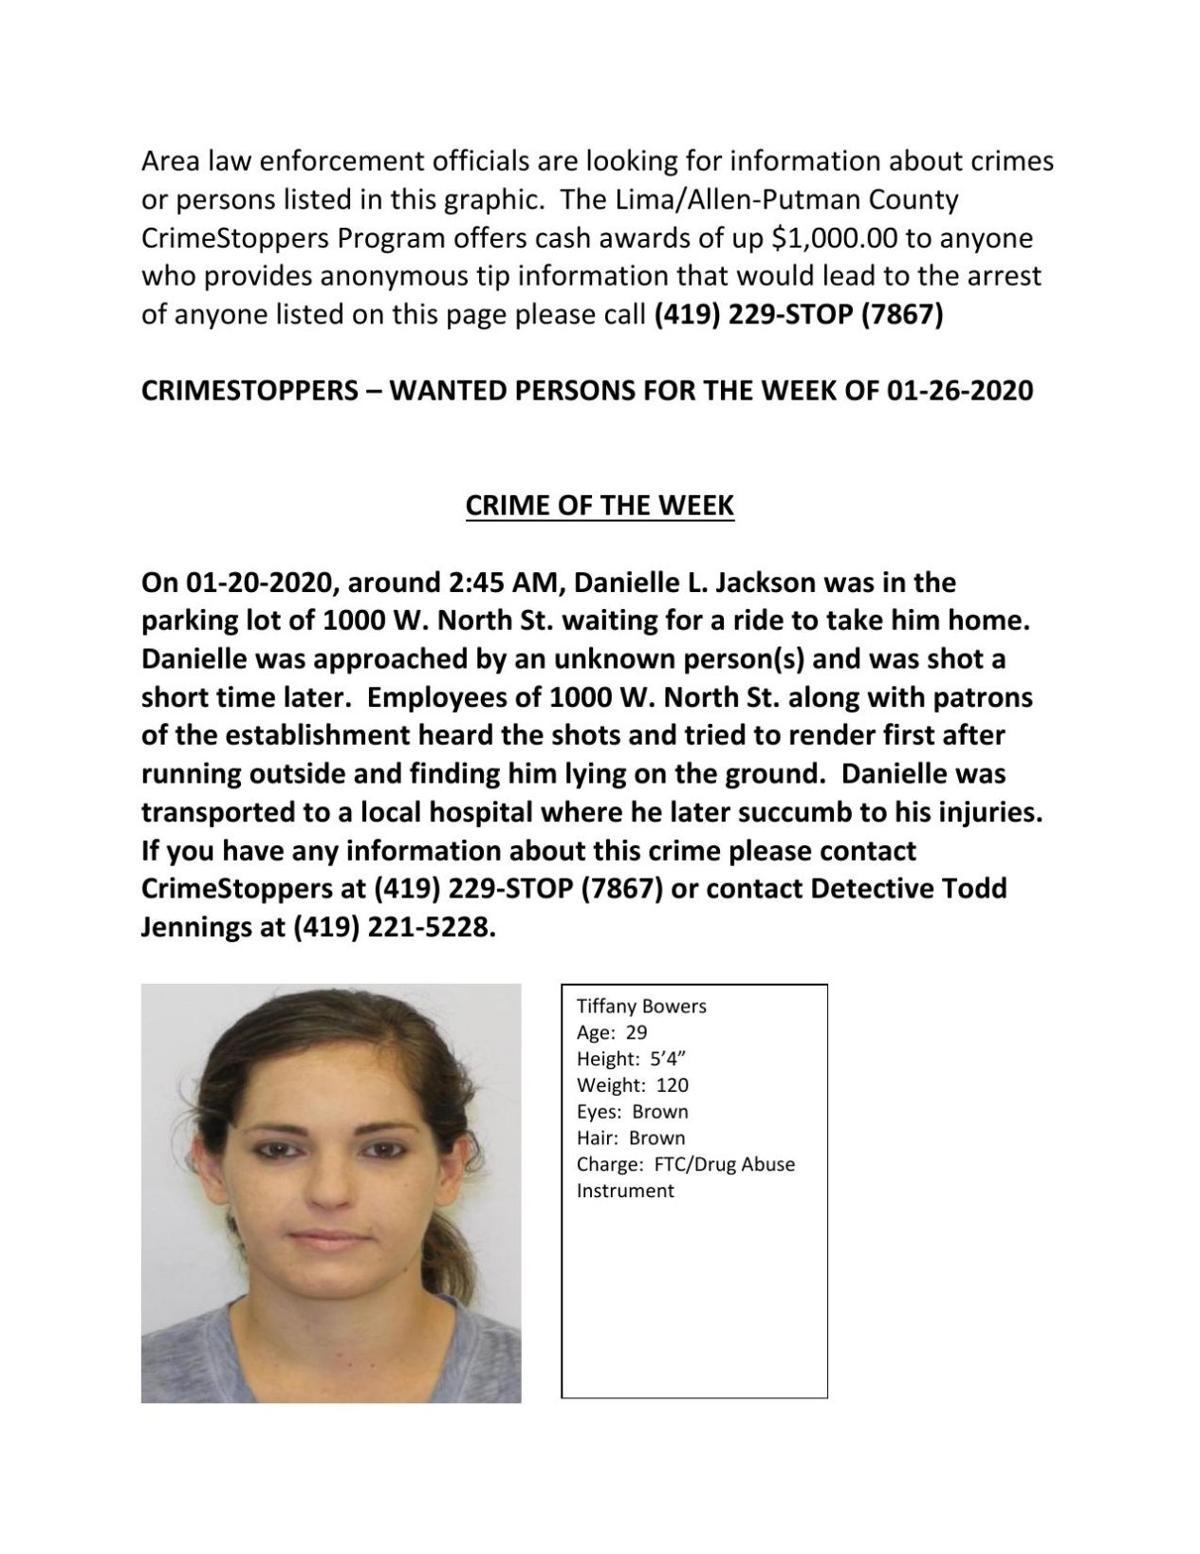 Wanted Persons, 01-26-2020 (a).pdf